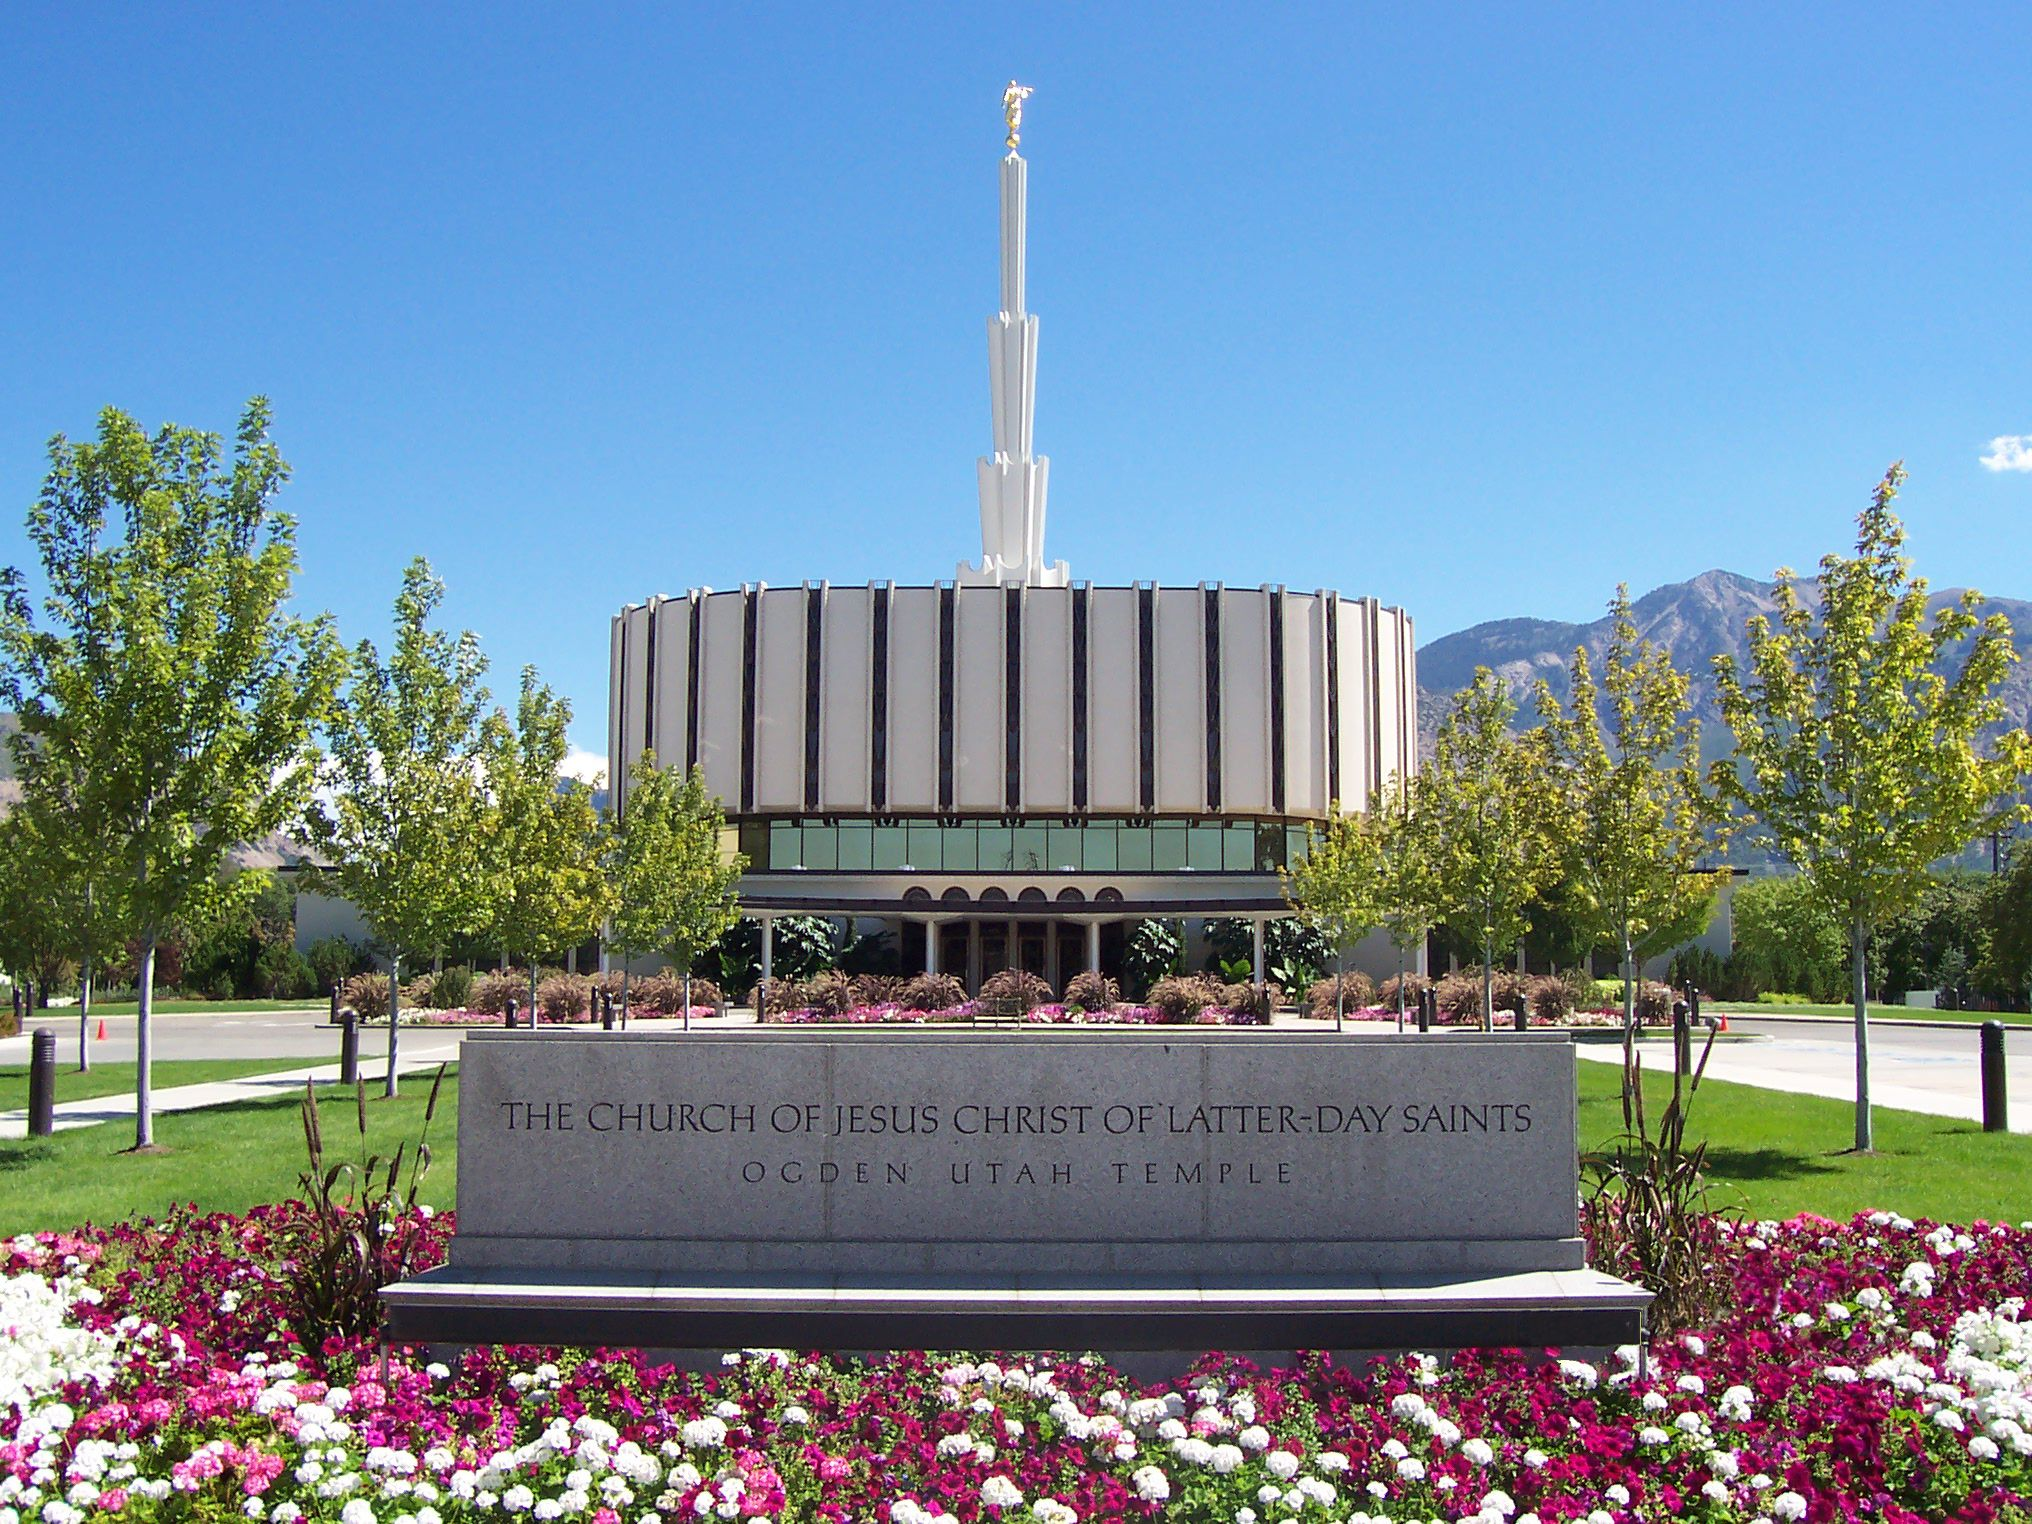 Ogden UT LDS Temple (pre-2011). Enjoyed my visit there with my SIL.